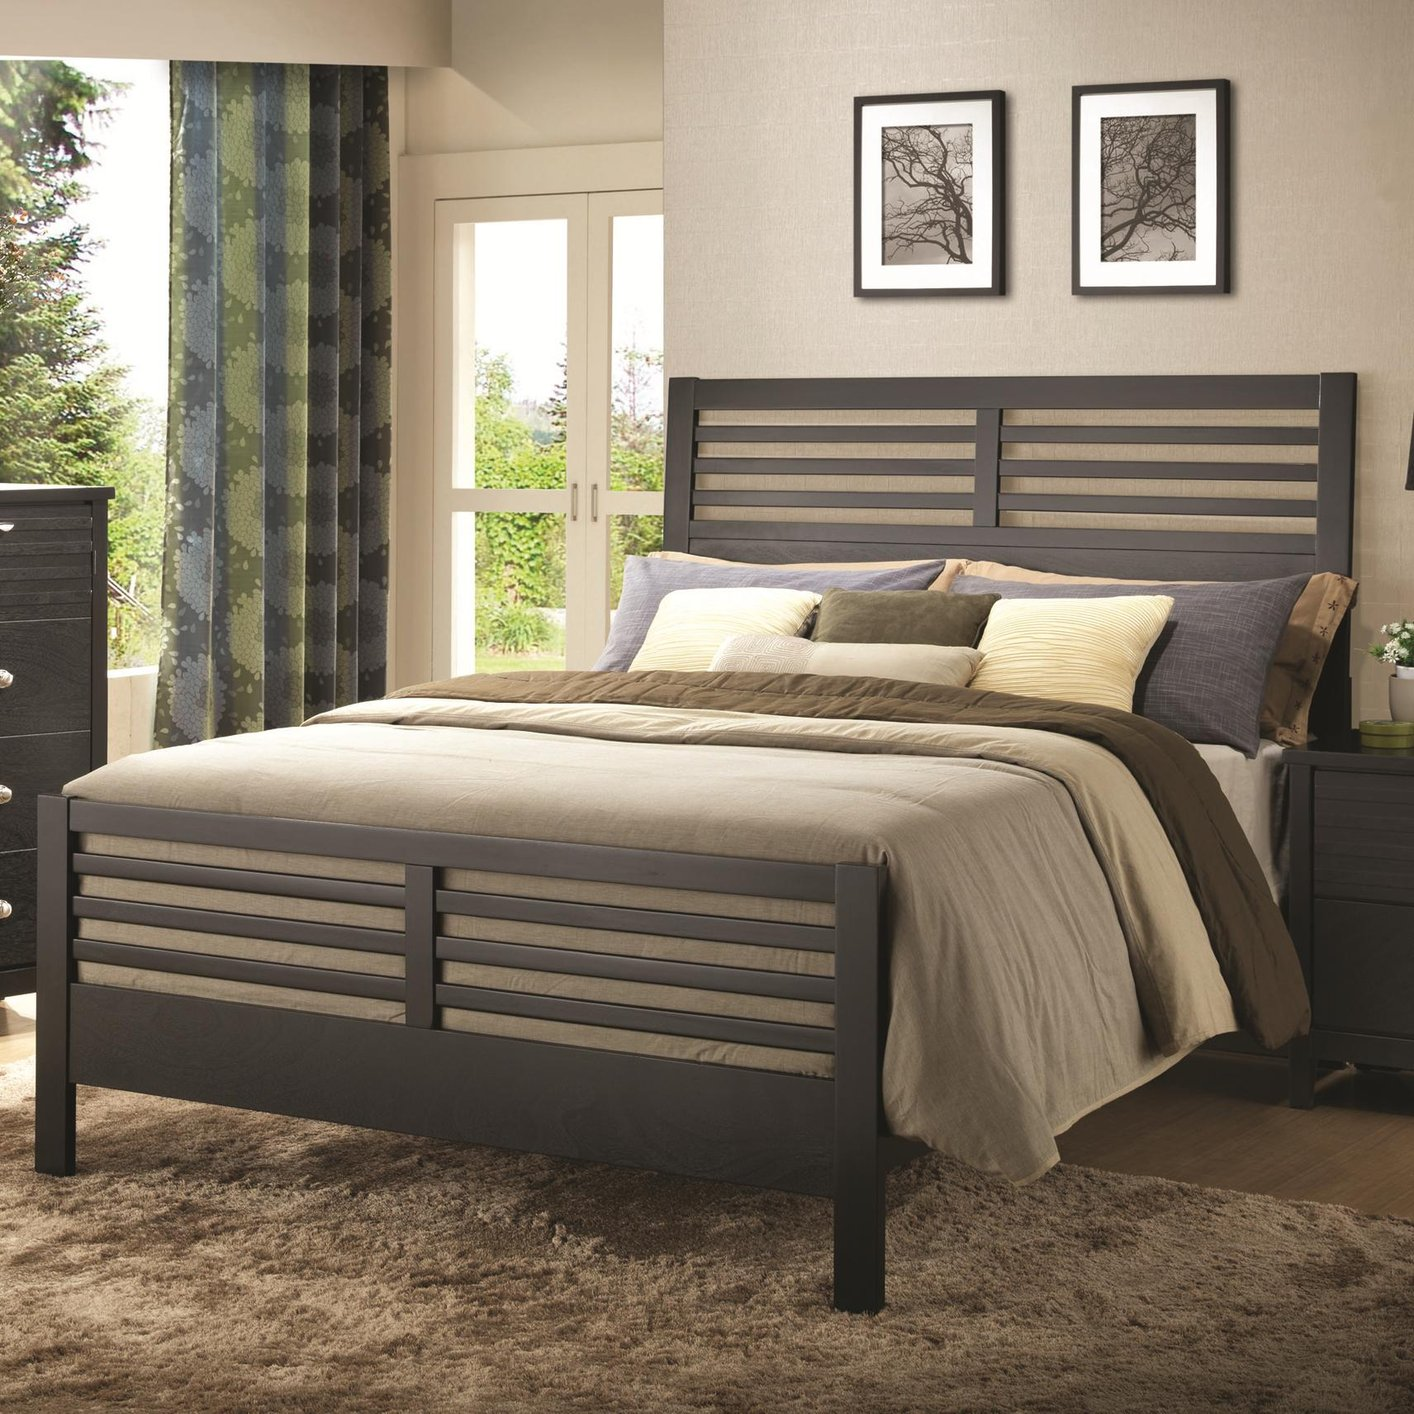 Coaster Kw Black California King Size Wood Bed